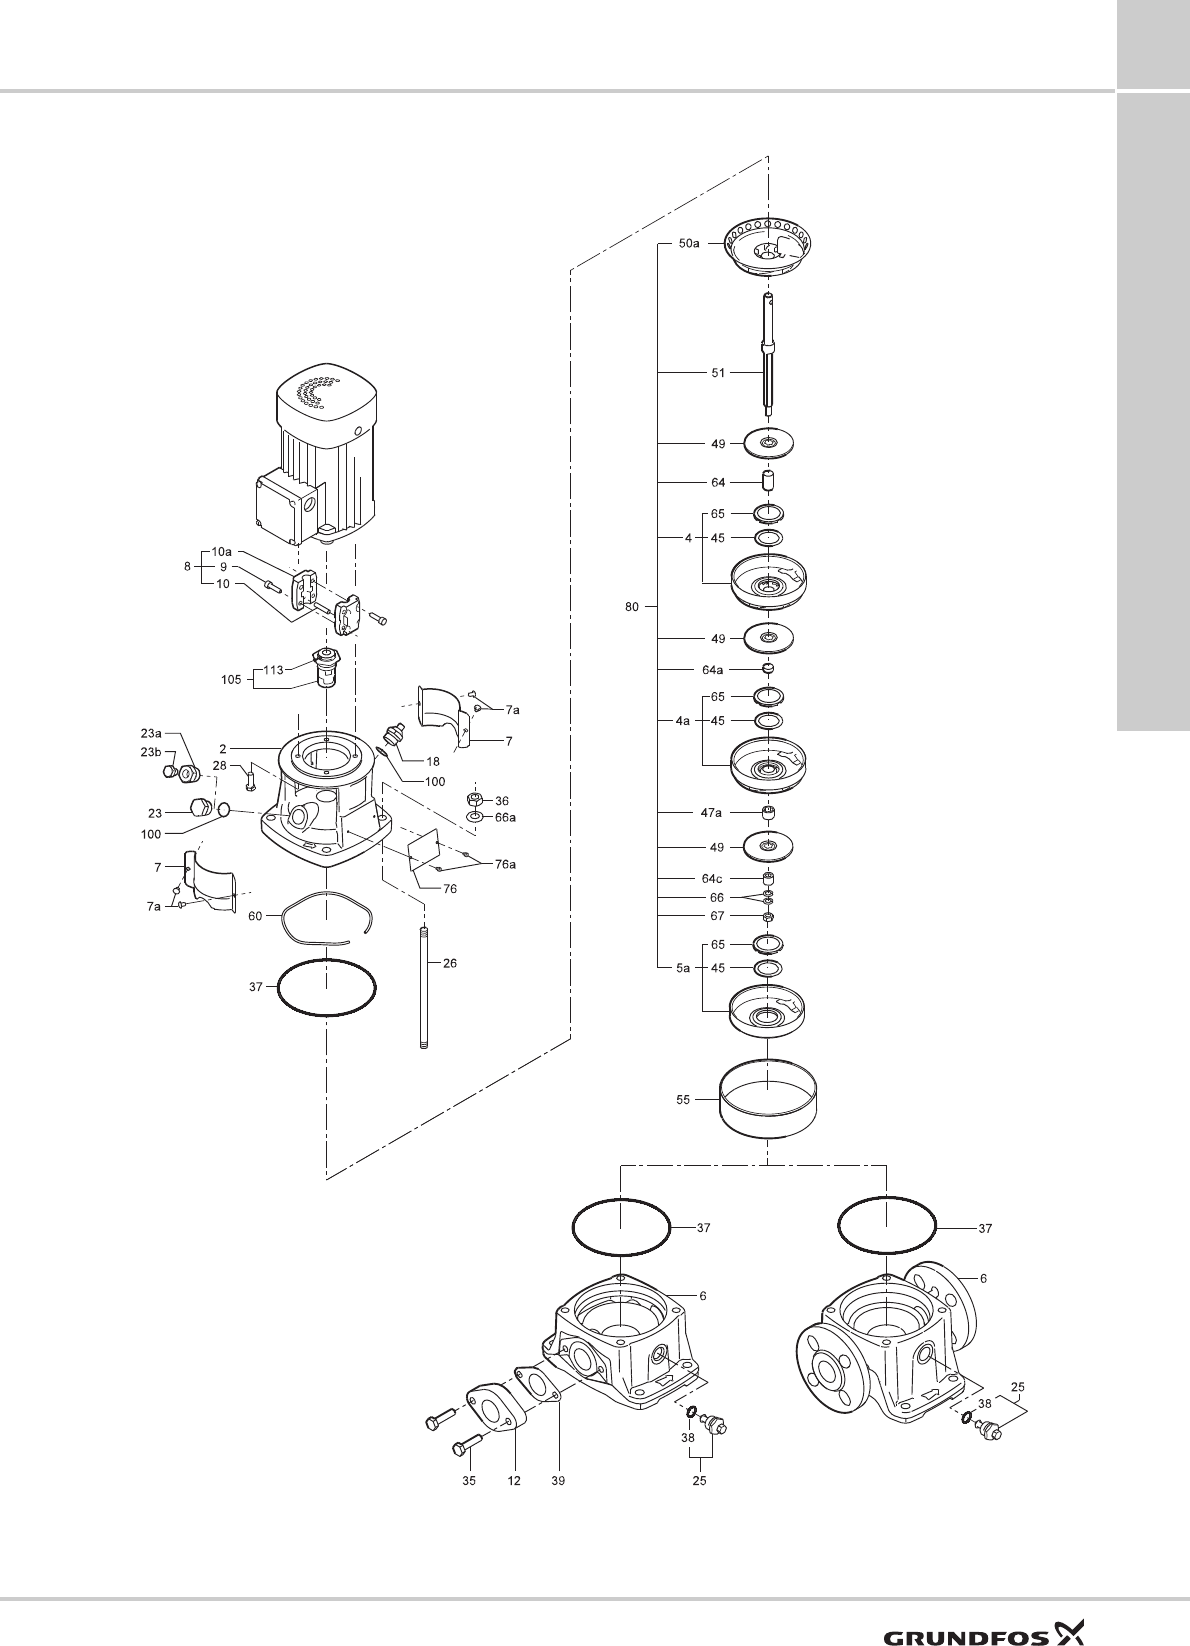 551463 1 Grundfos CR, CRI, CRN Service Kit Catalog